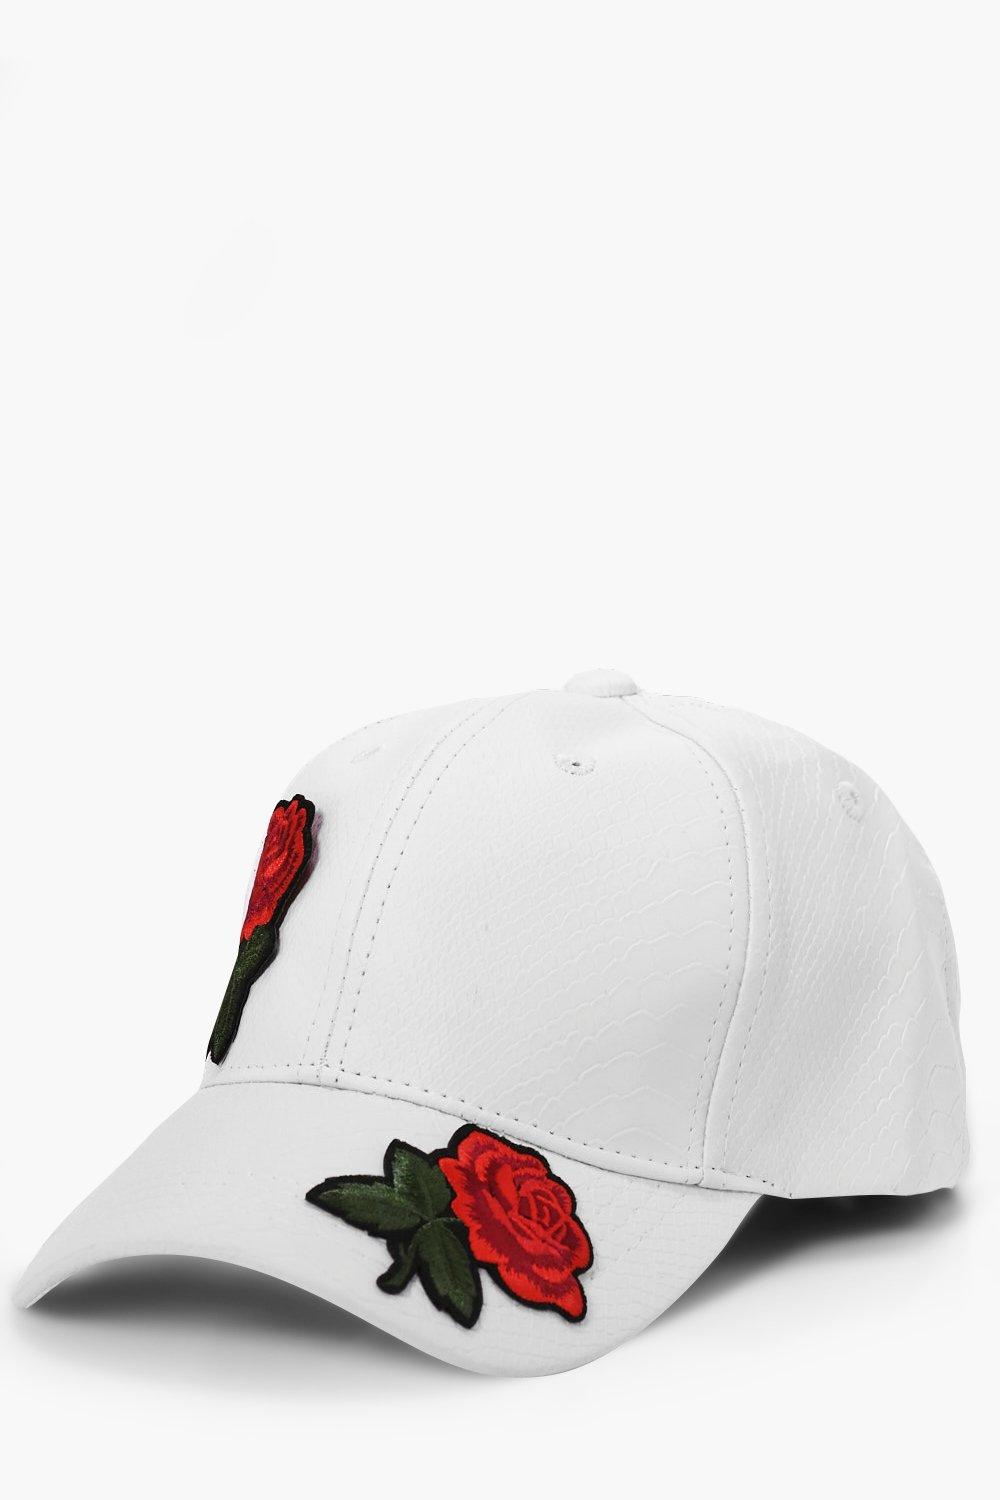 Rose Embroidered Faux Snake Skin Cap - white - Whi